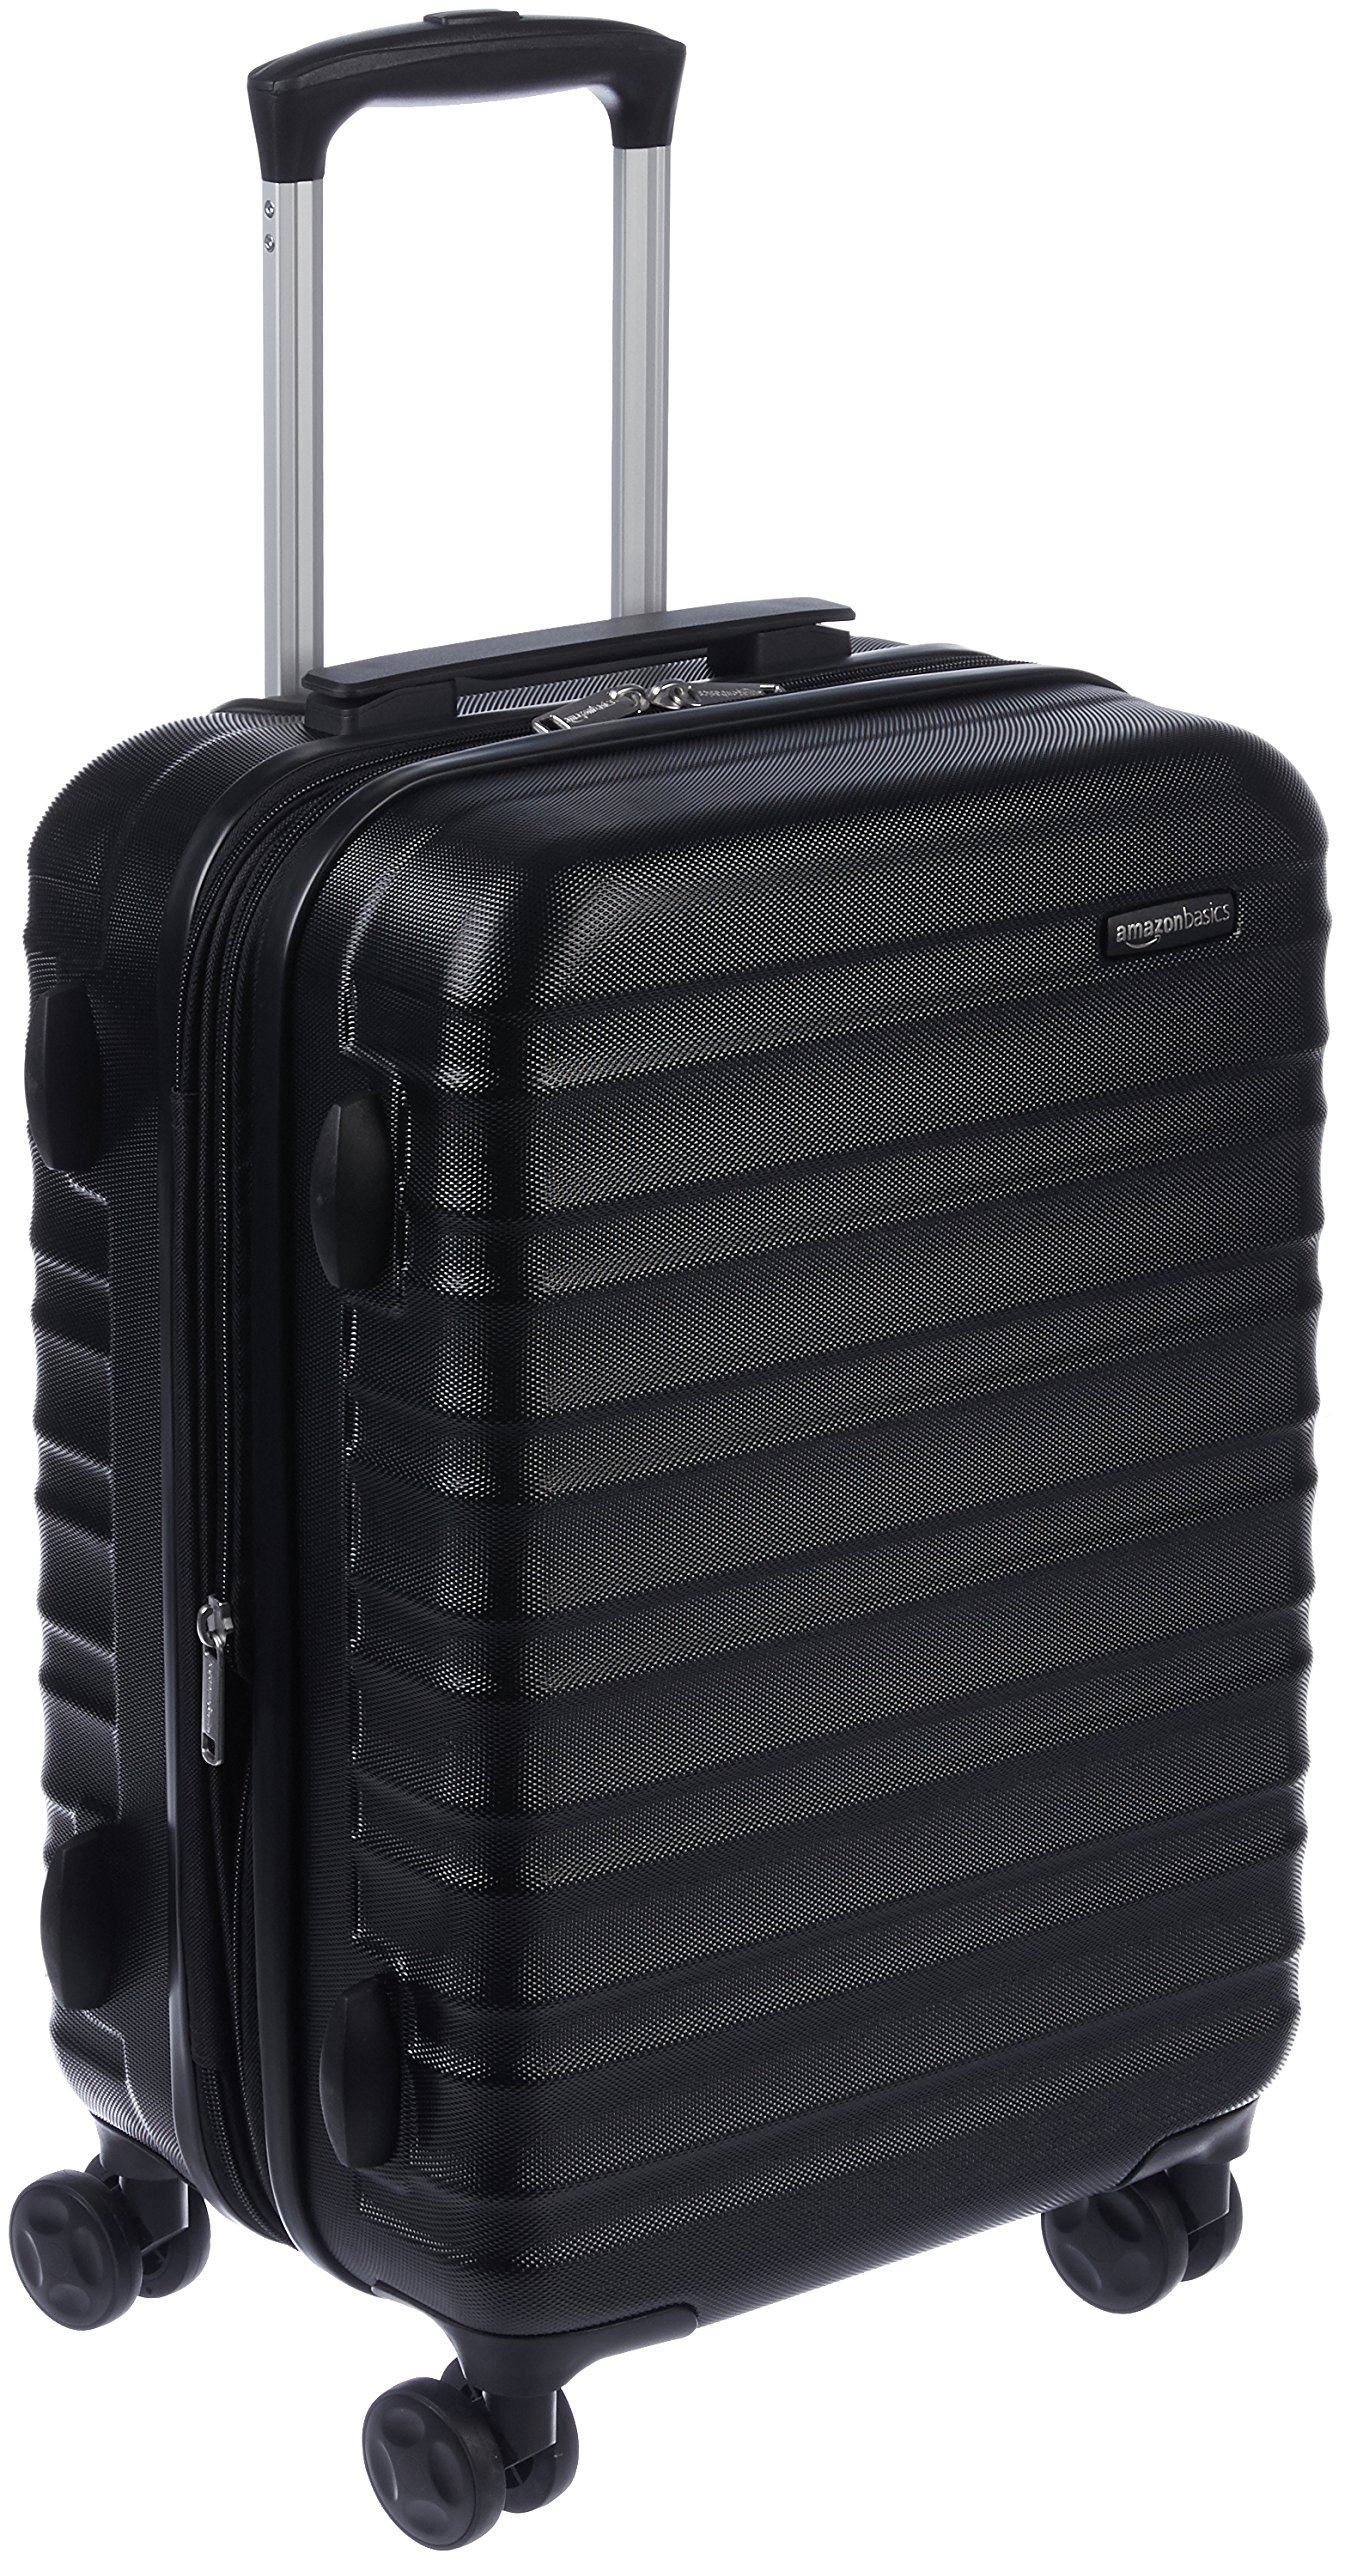 AmazonBasics Hardside Spinner Luggage - 20-inch Carry-on/Cabin Size, Black product image